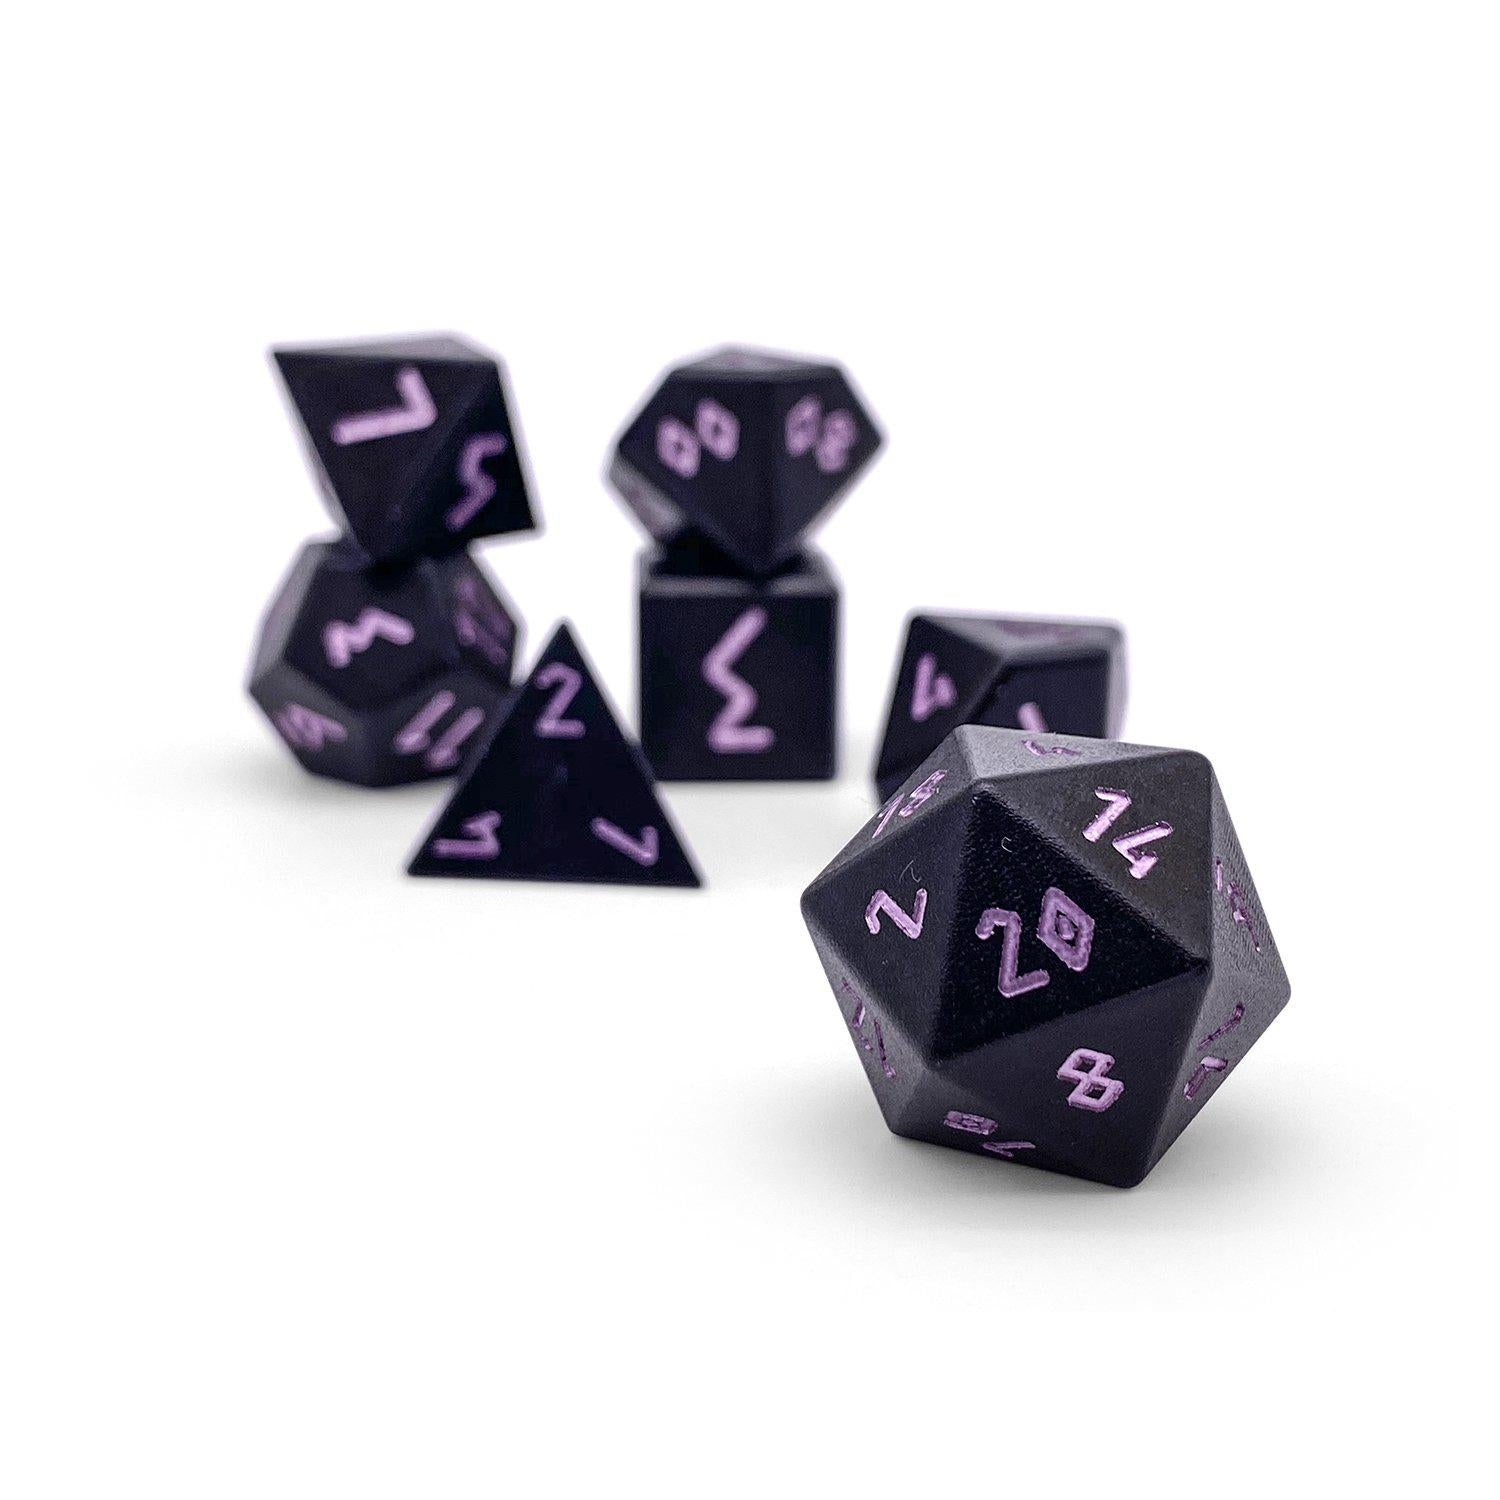 Orb Series - Orb of Paralysis - Set of 7 RPG Dice by Norse Foundry Precision Polyhedral Dice Set